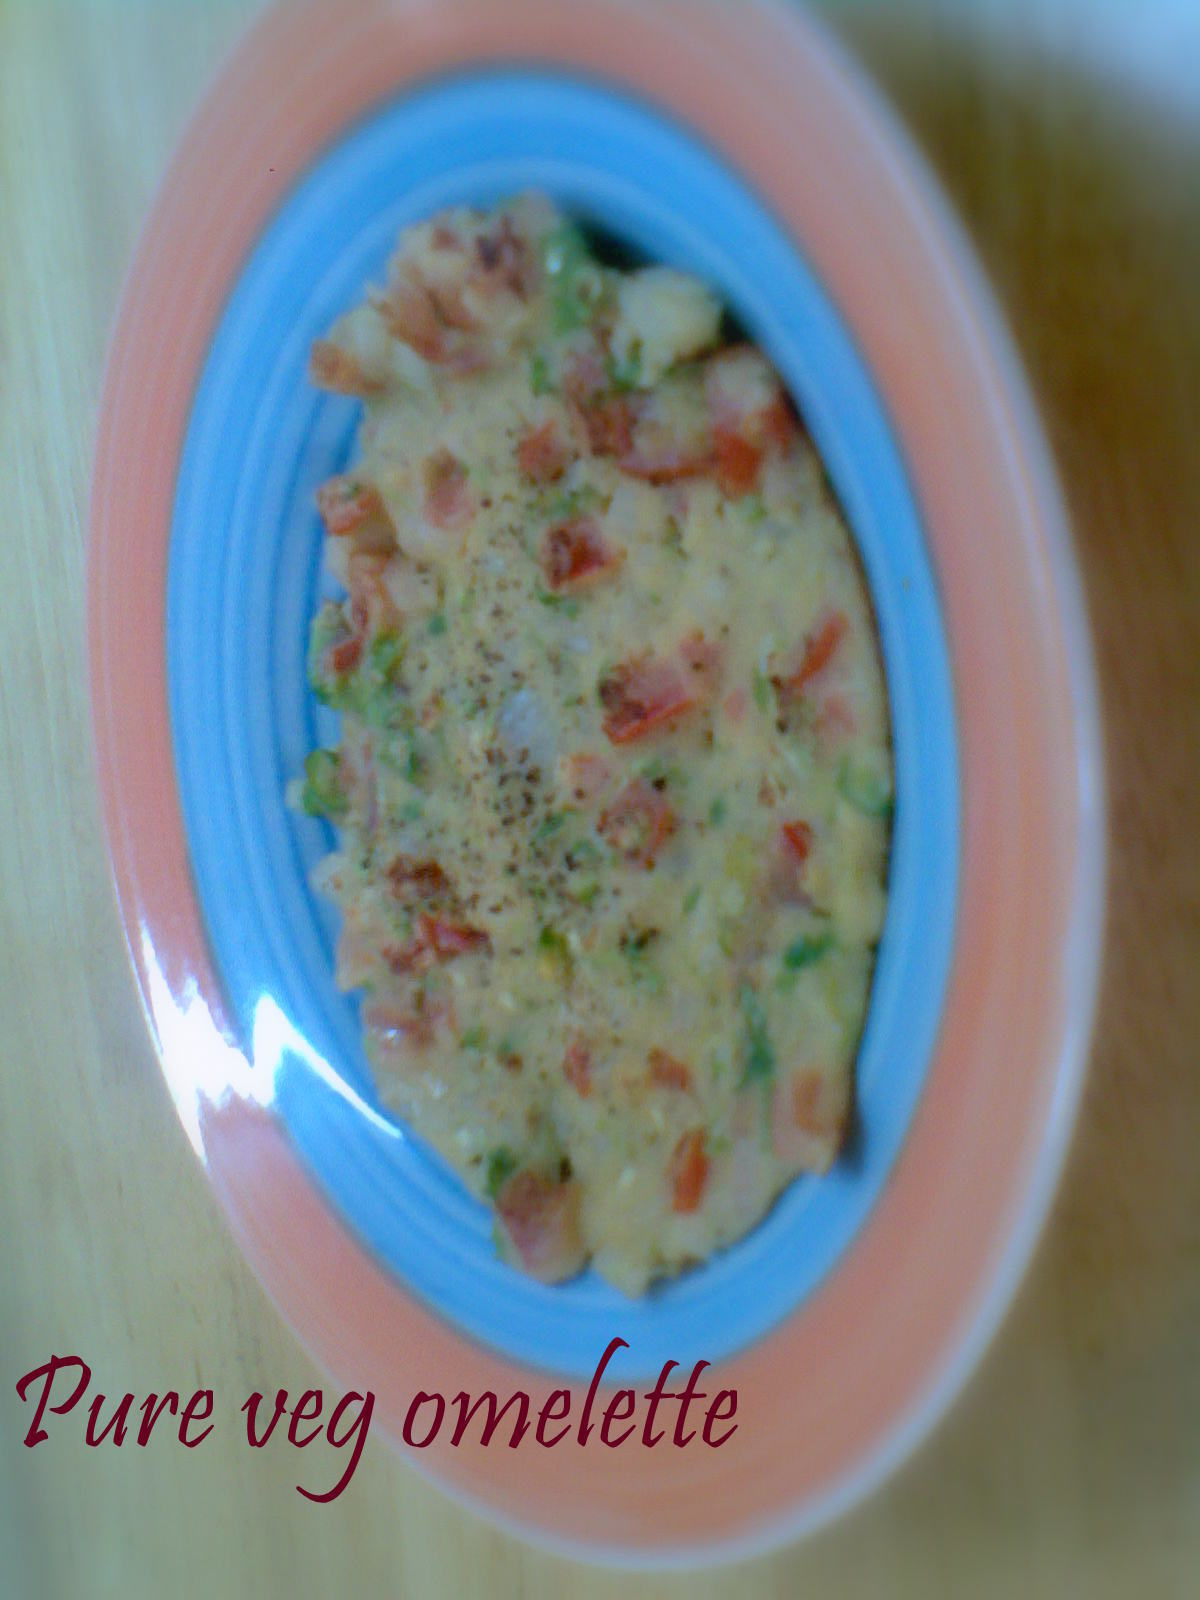 PURE VEG OMELETTE RECIPE